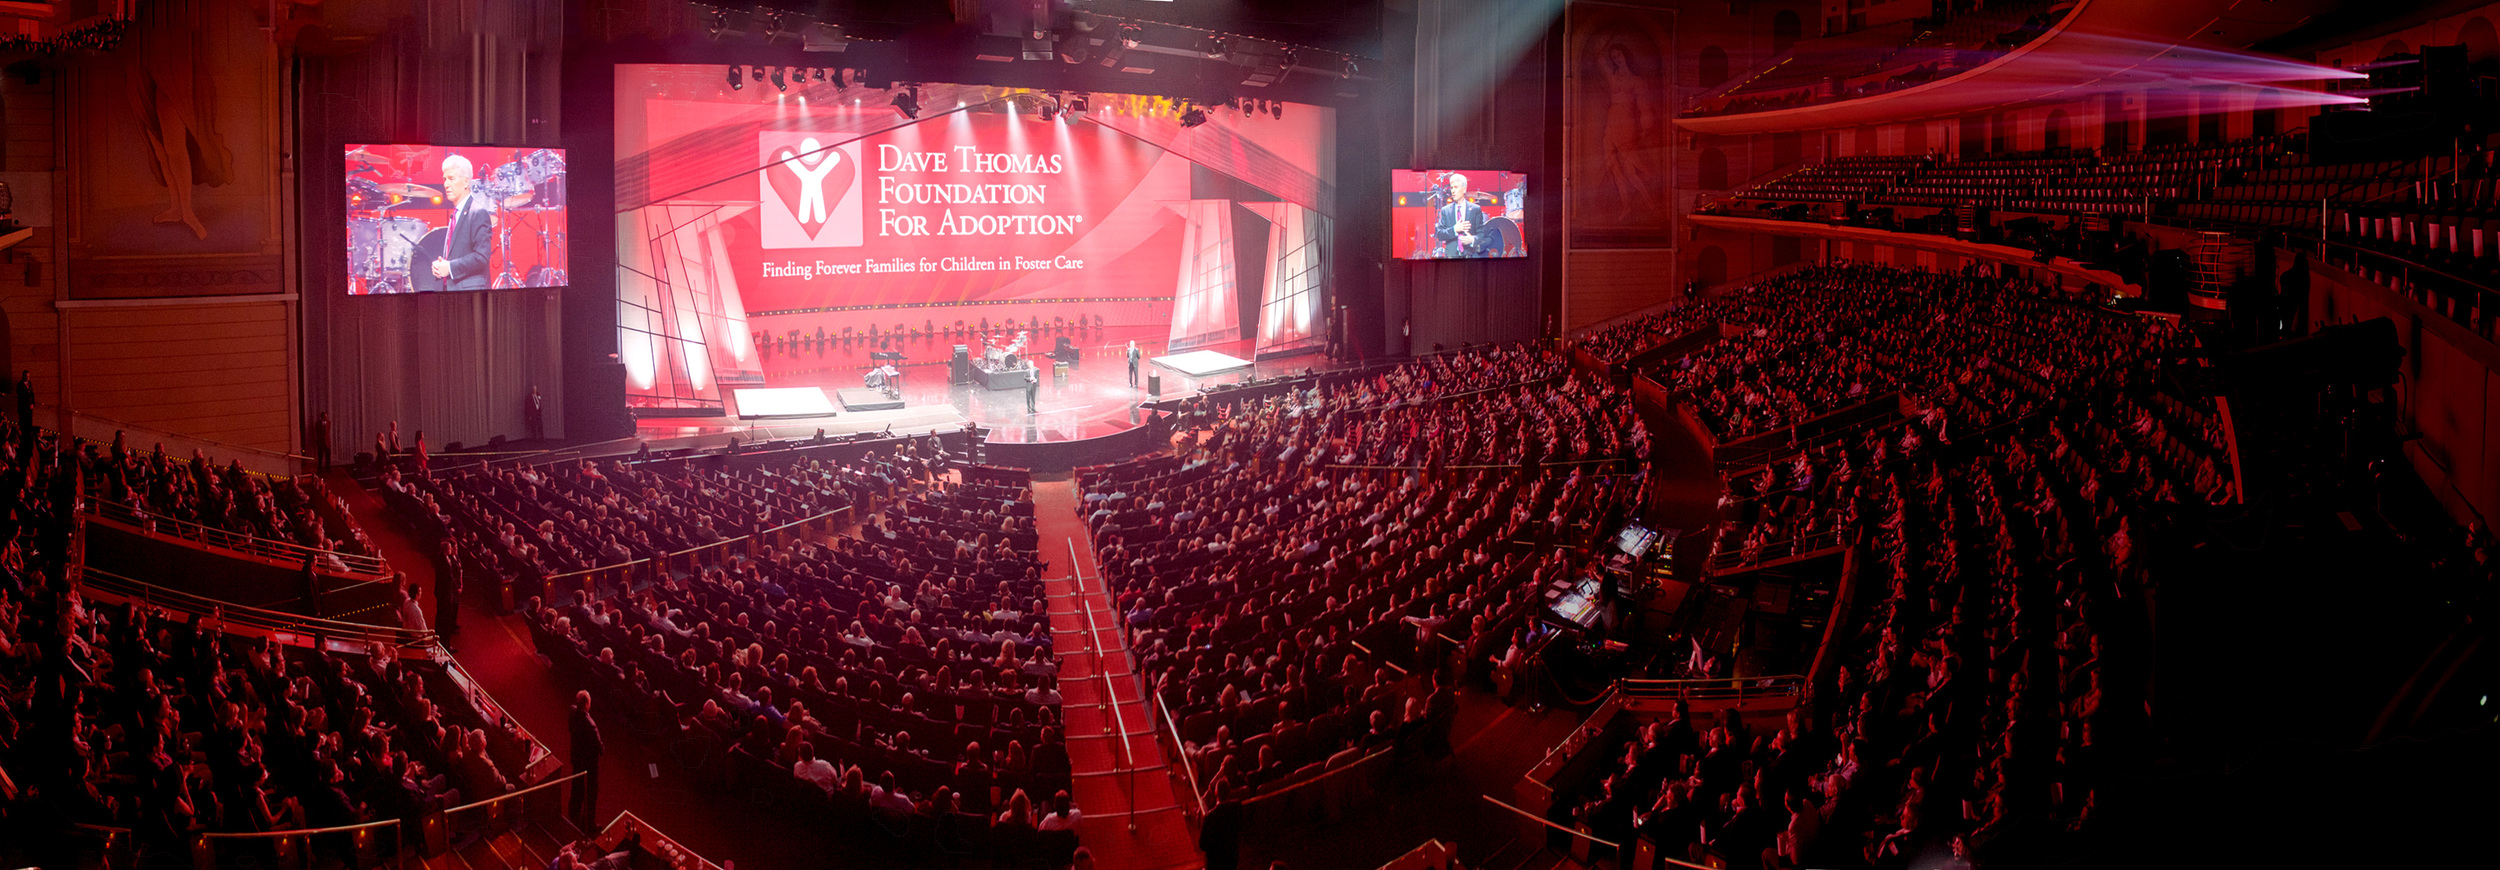 Auction-Stage-Pan-1.jpg